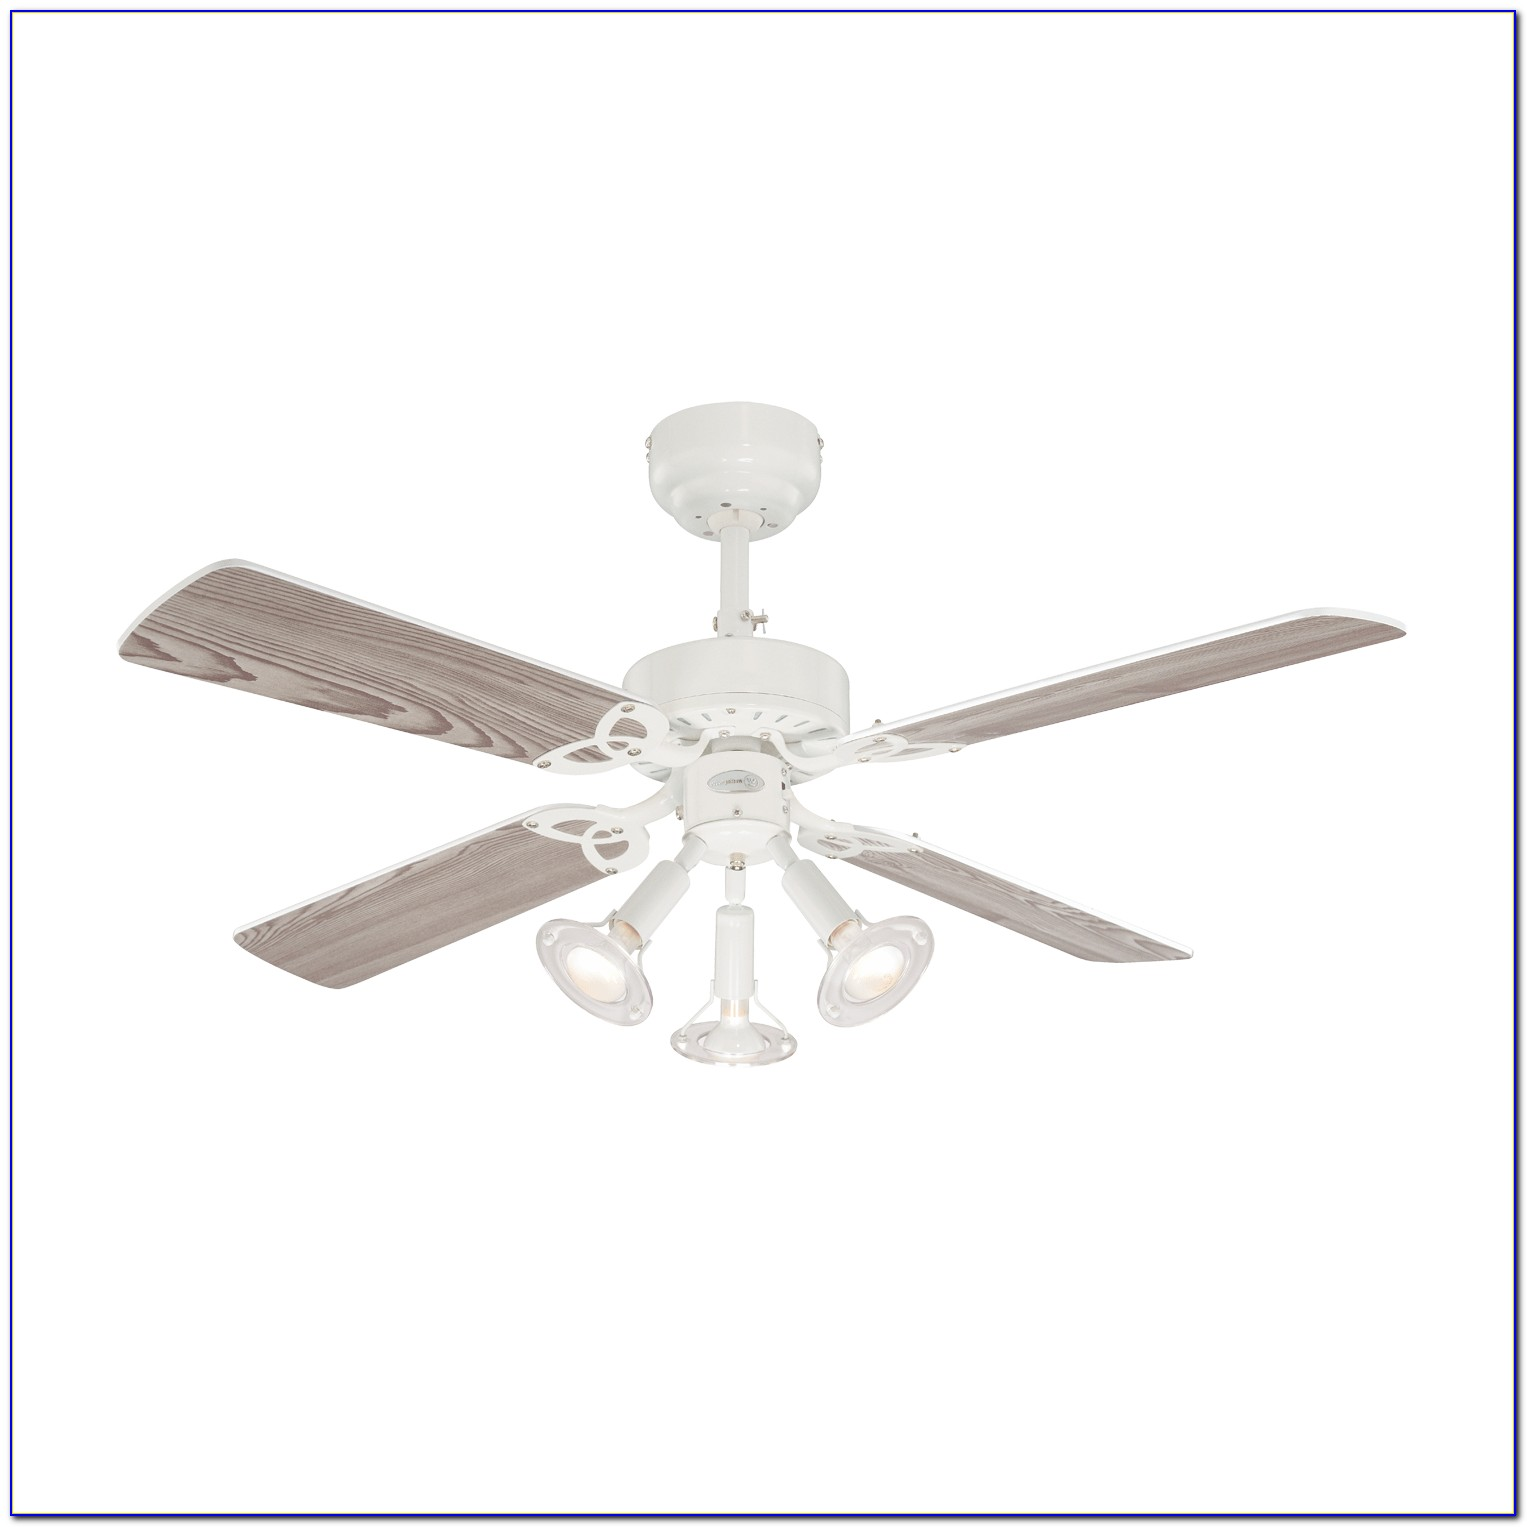 Westinghouse Ceiling Fan Light Kit Instructions